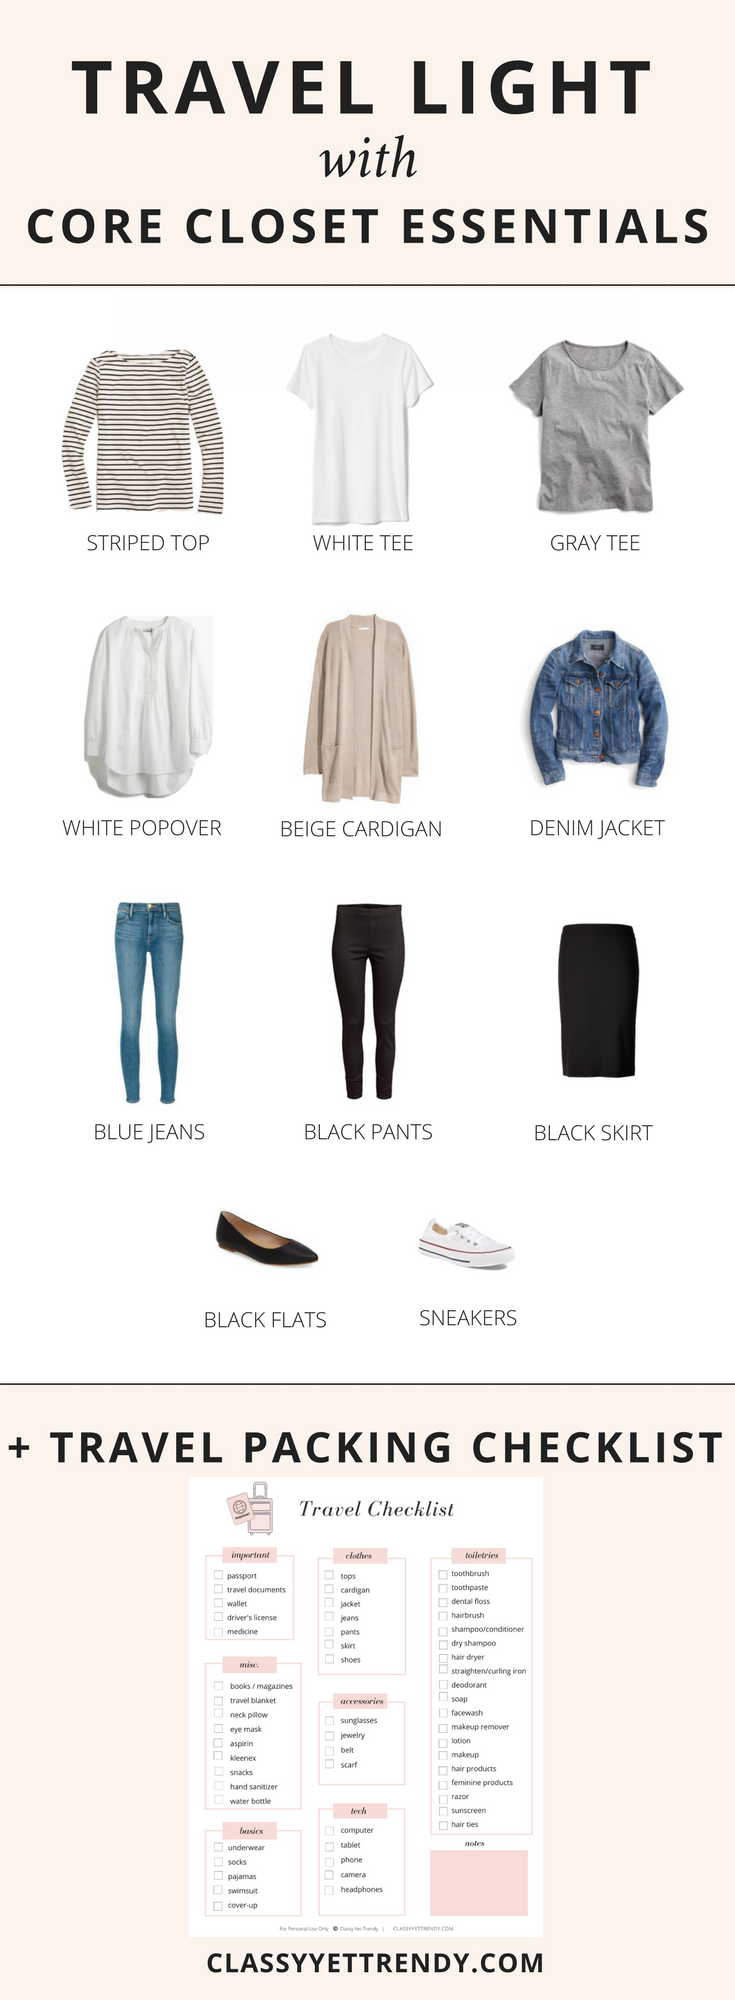 Travel Light with Core Closet Essentials + Free Checklist